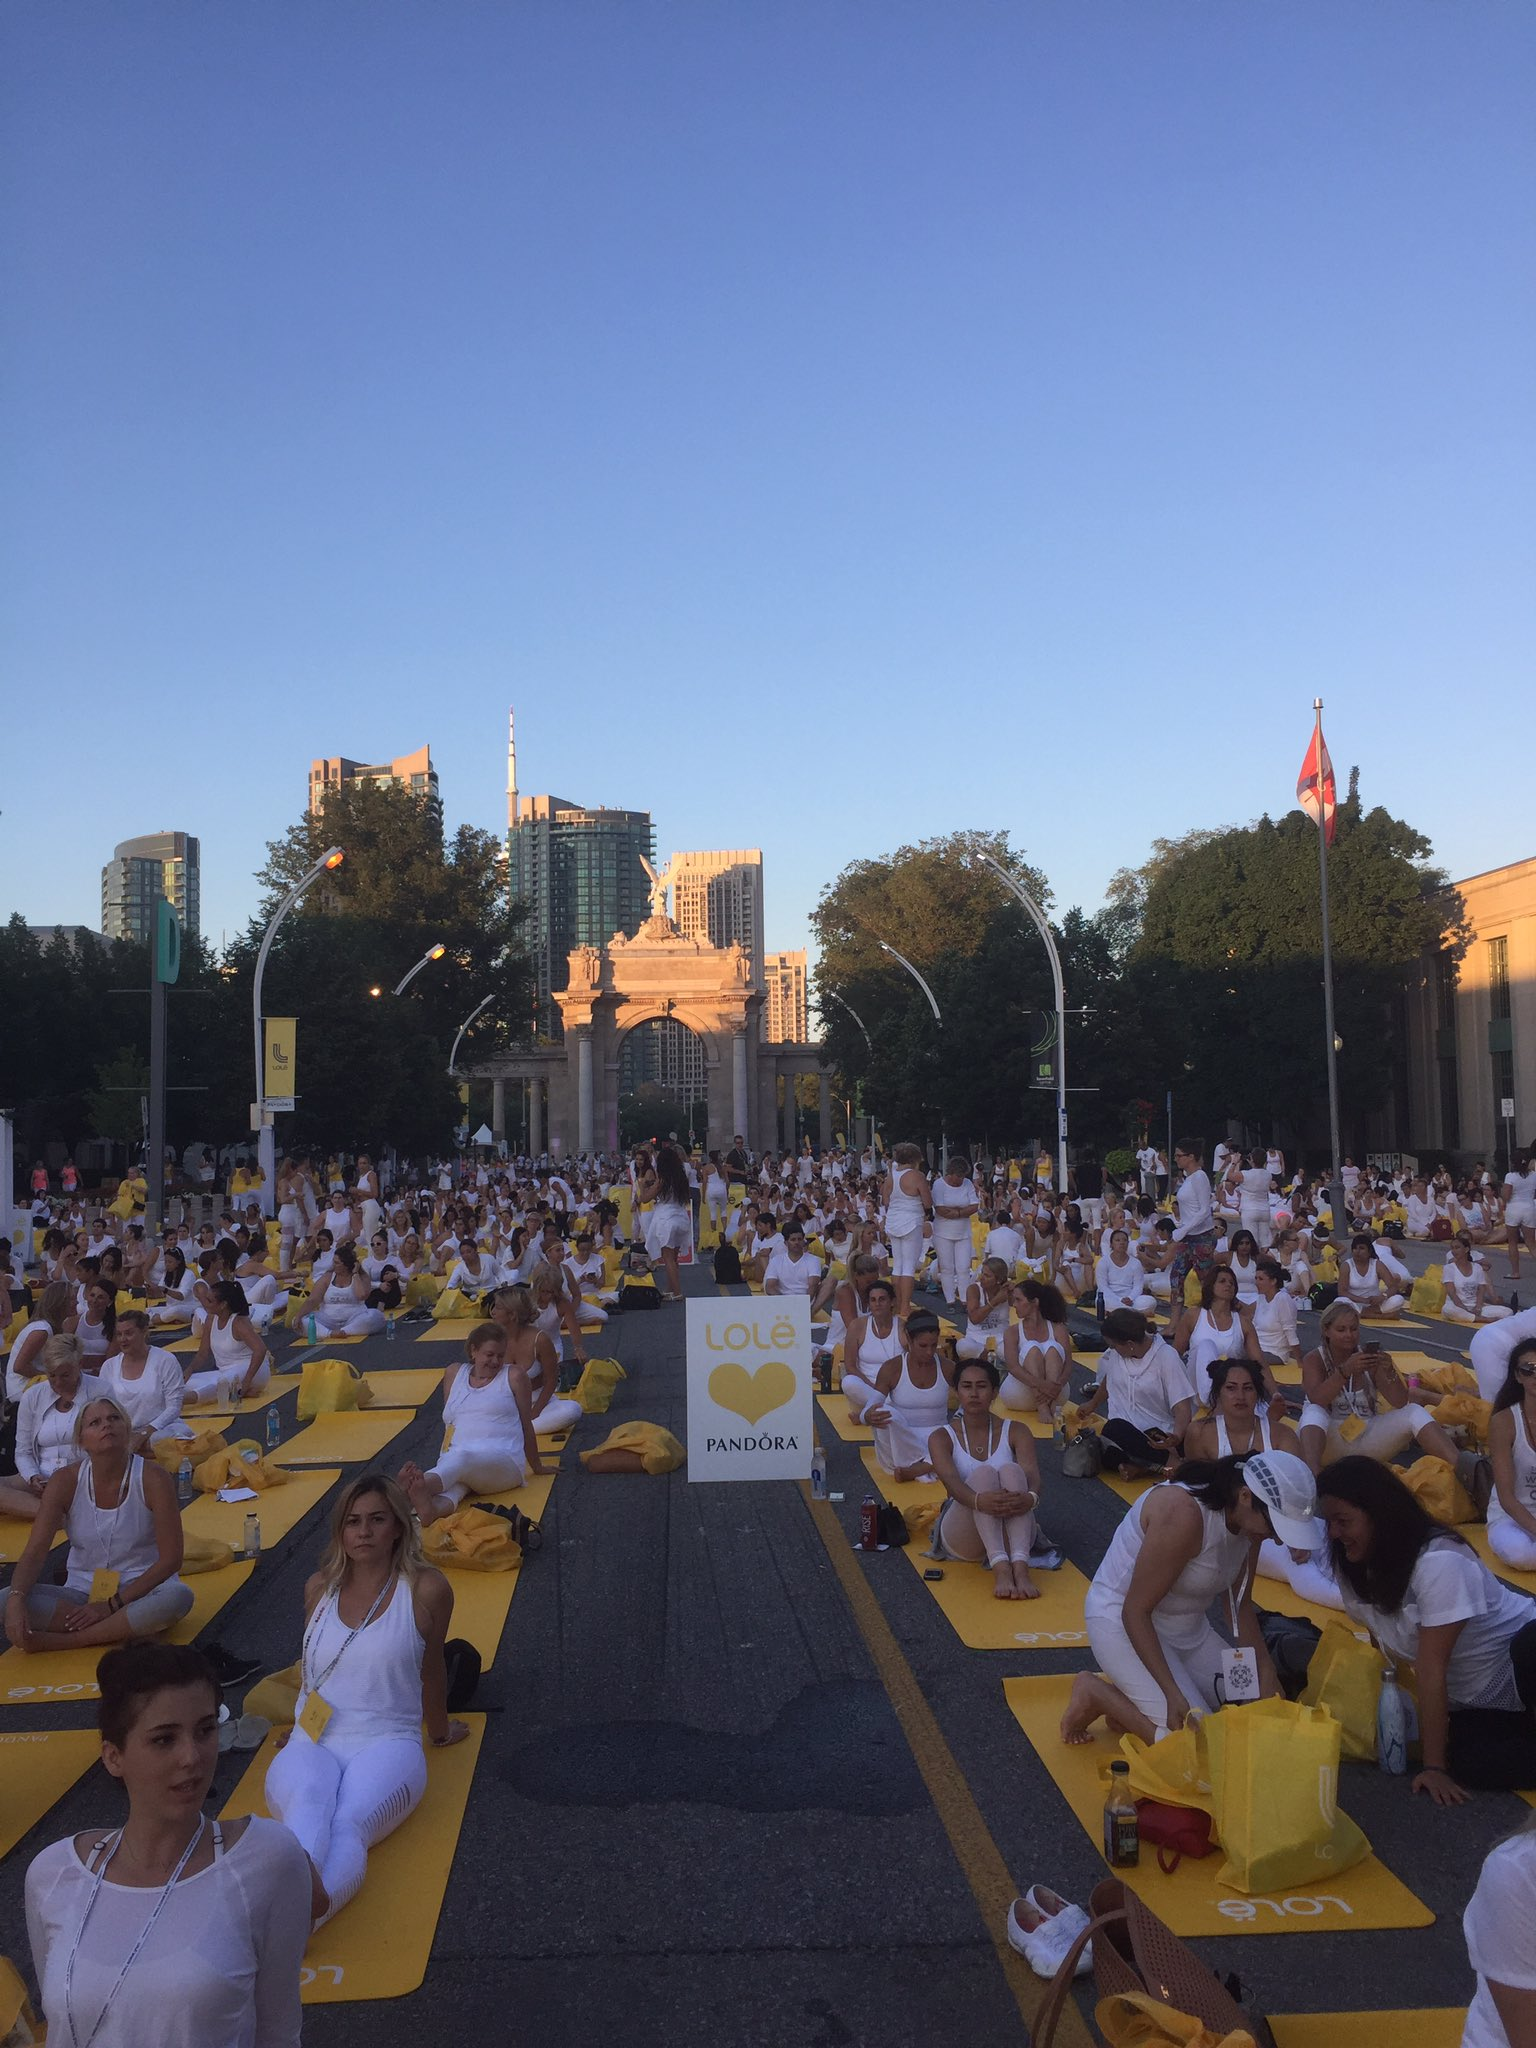 It's a sea of white and yellow at the @Lolewomen White Tour in Toronto. https://t.co/OsV91hWnTY